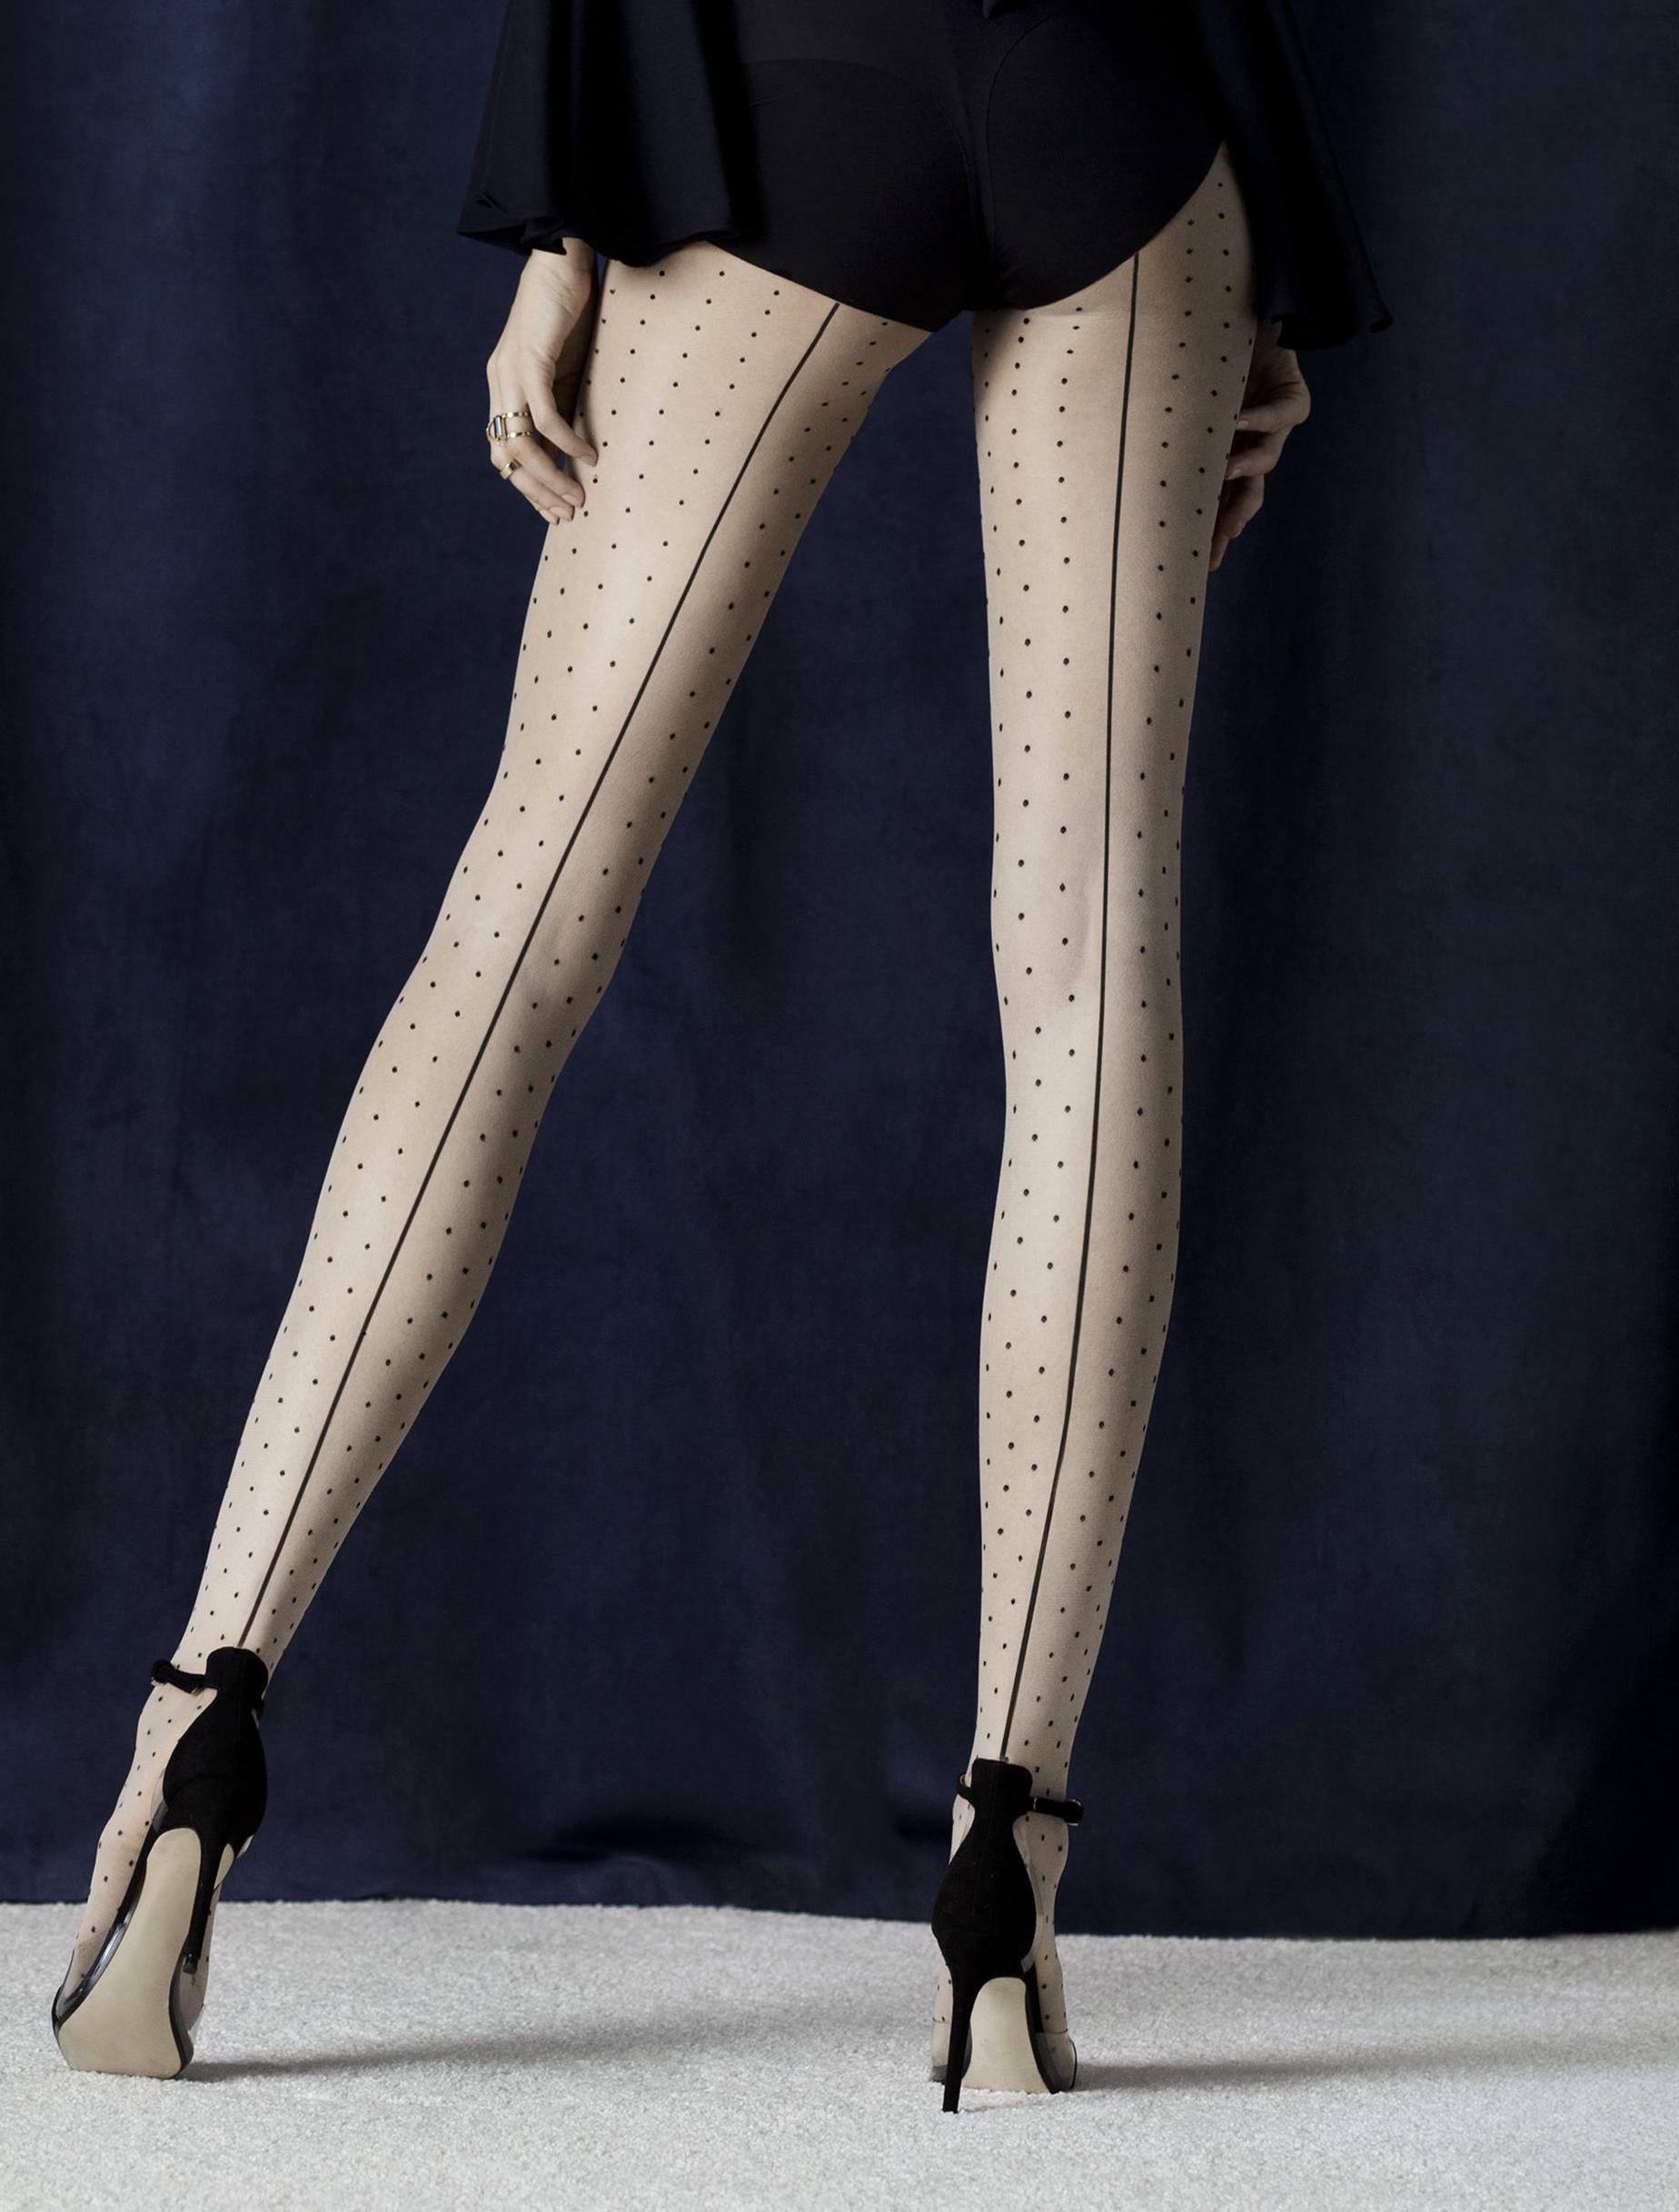 Fiore: Sexy Story Patterened Tights FIO_INTRIGUE_N